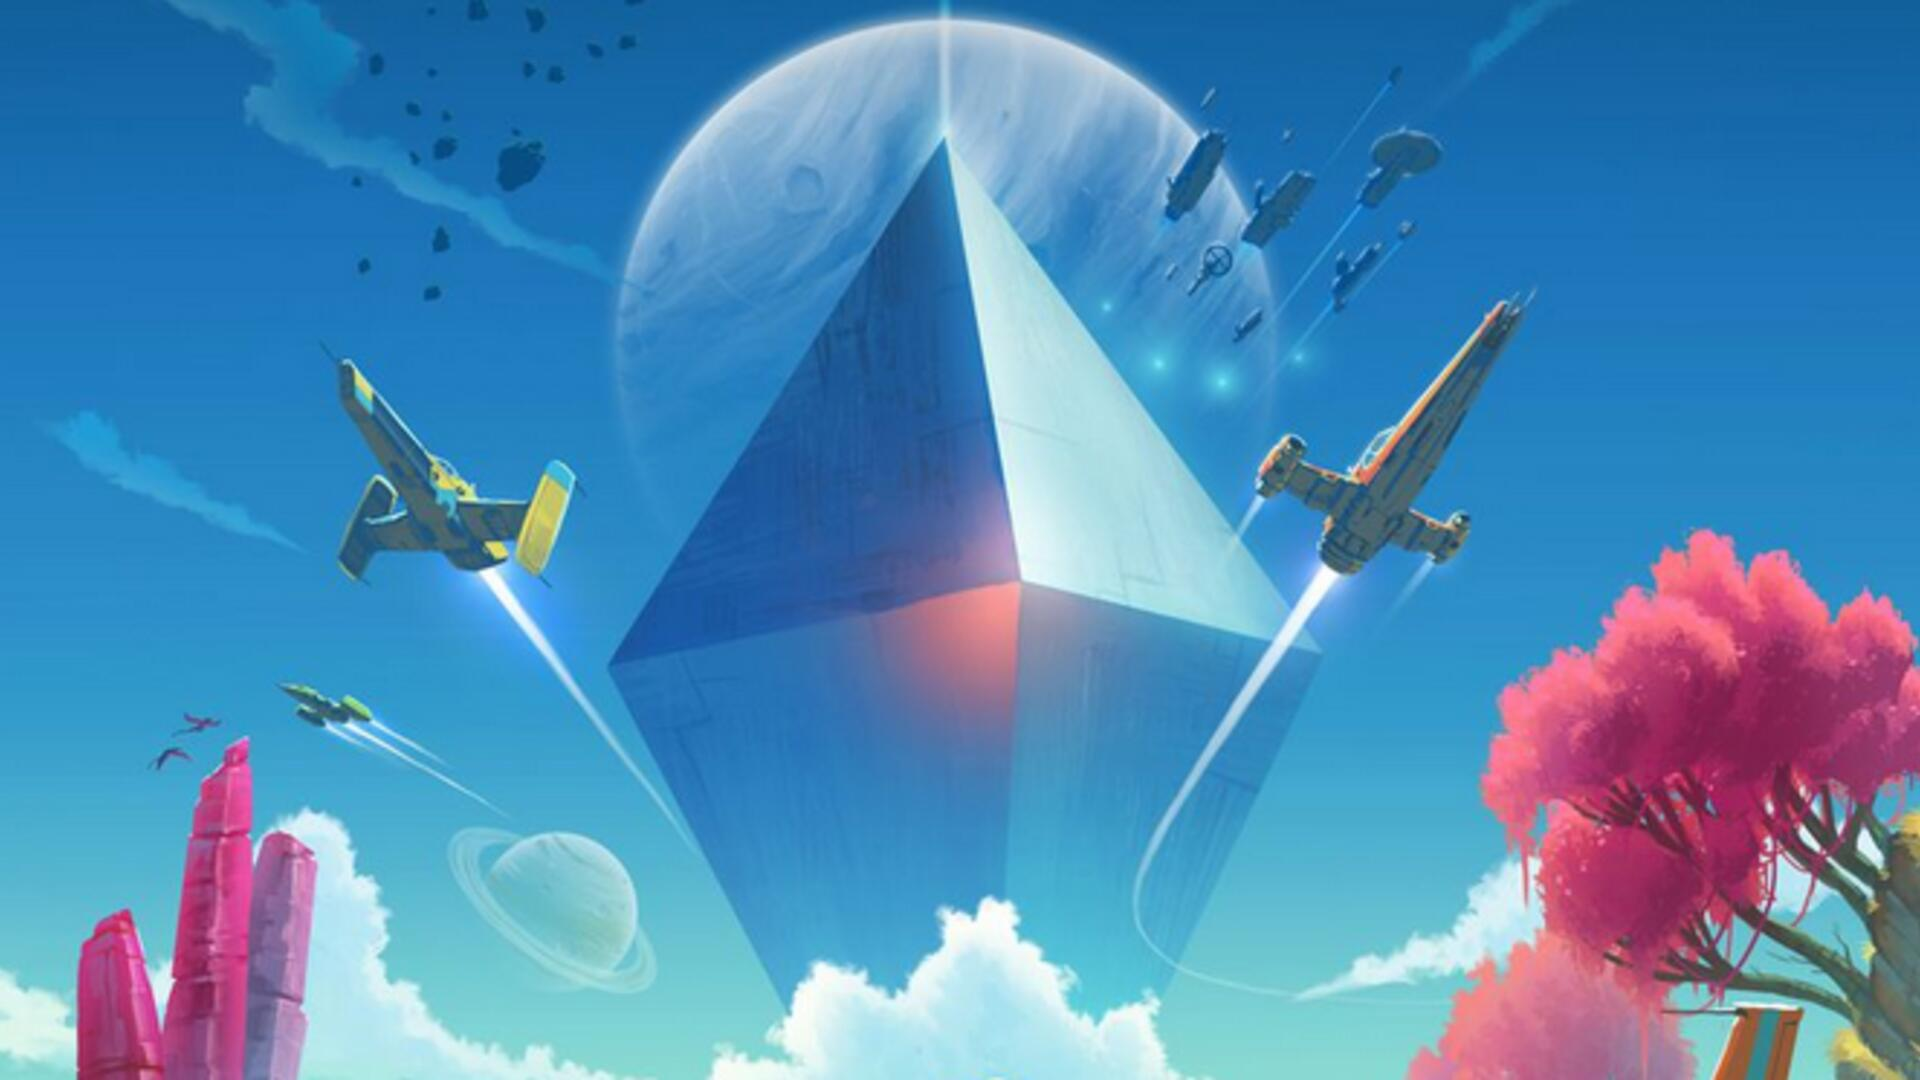 No Man's Sky Next is Out Today: Release Time, Patch Notes, and More Details Here